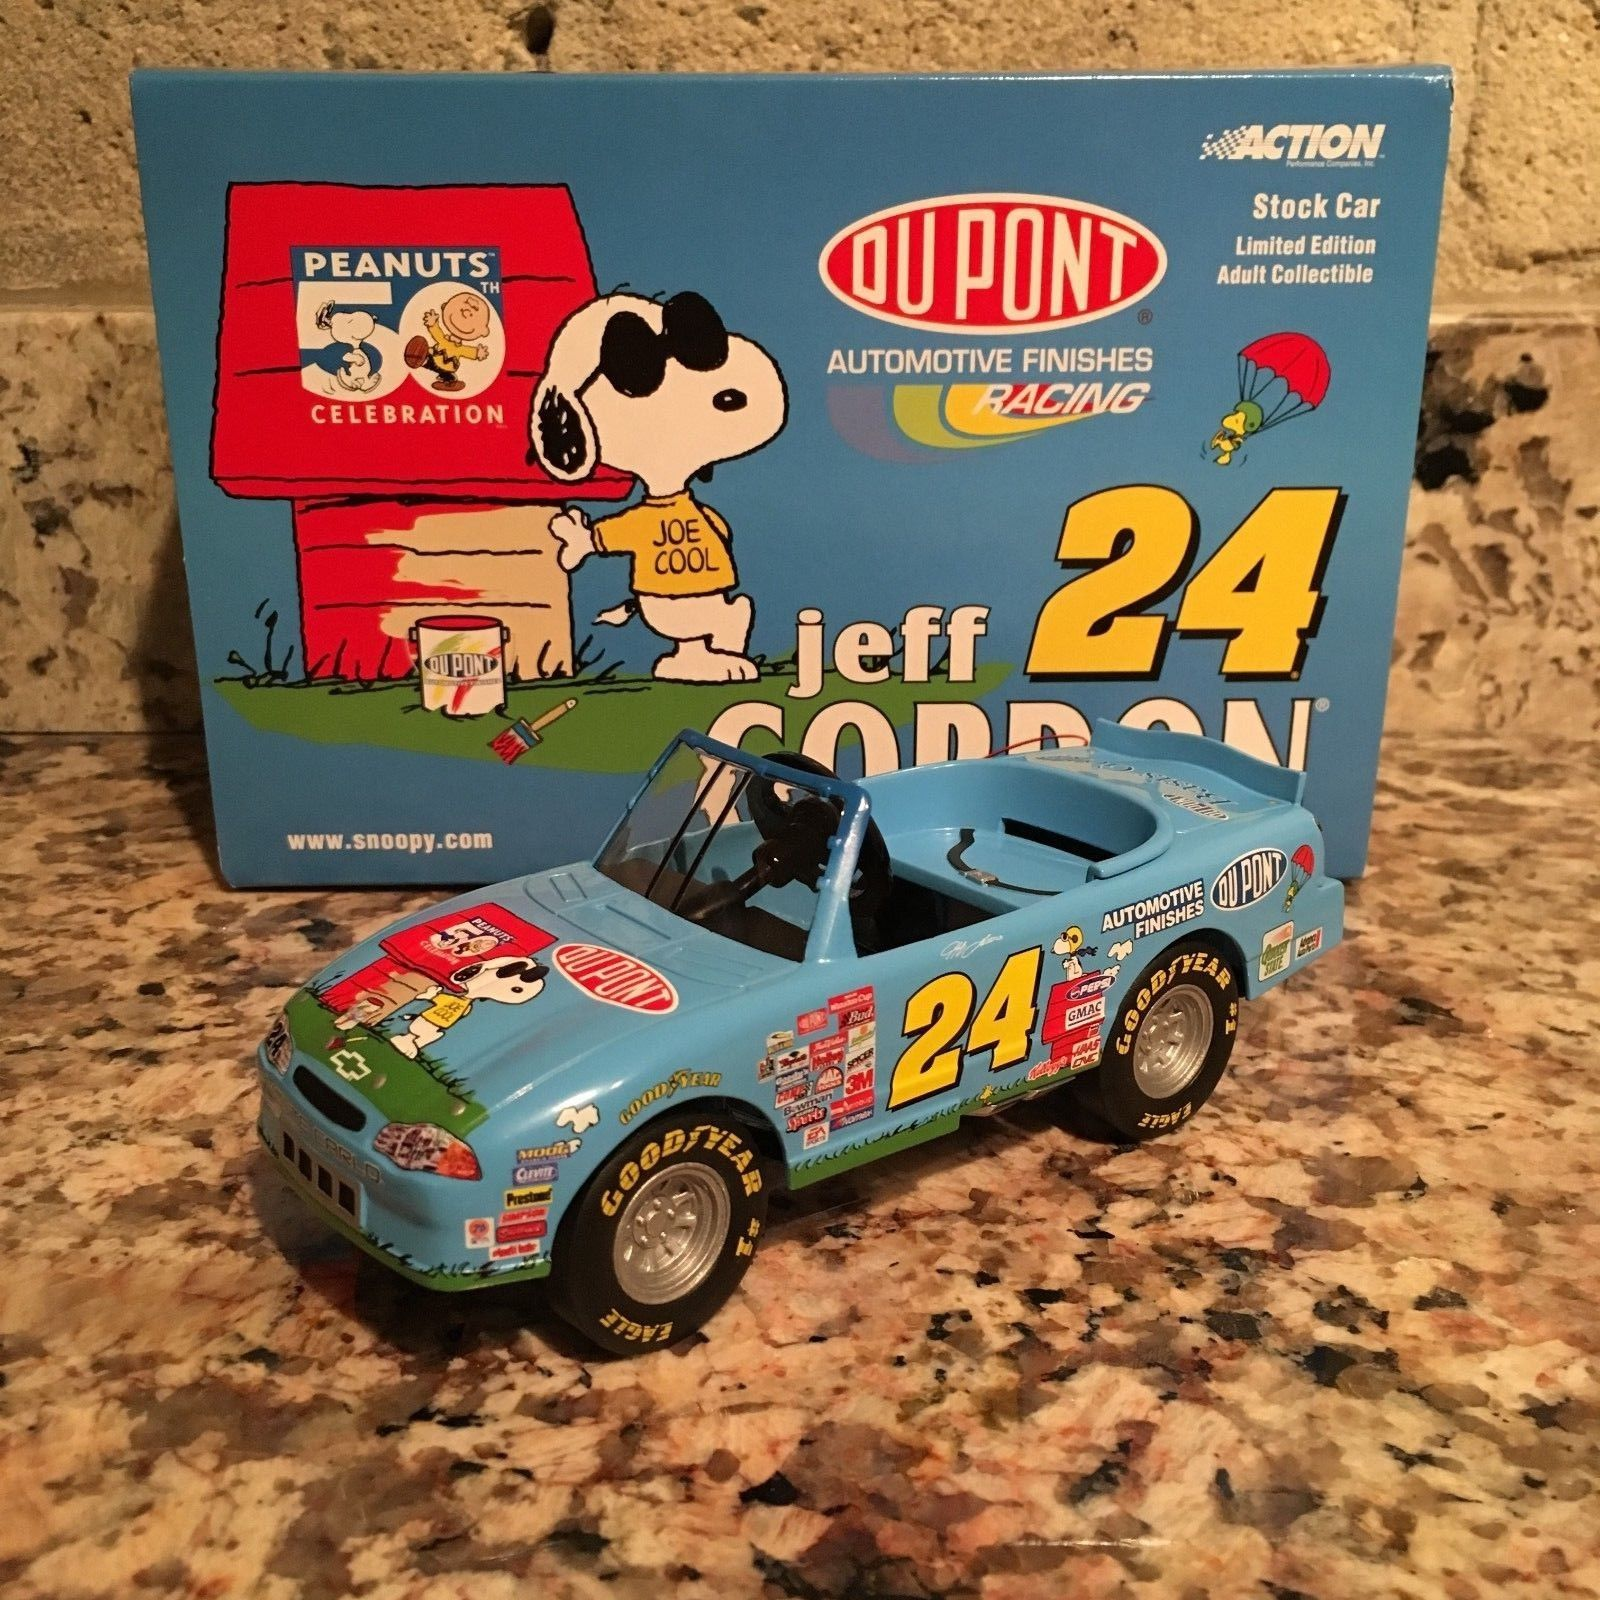 Jeff Gordon No. 24 DuPont/Peanuts 2000 Monte Carlo Action Pedal BANK Collectible